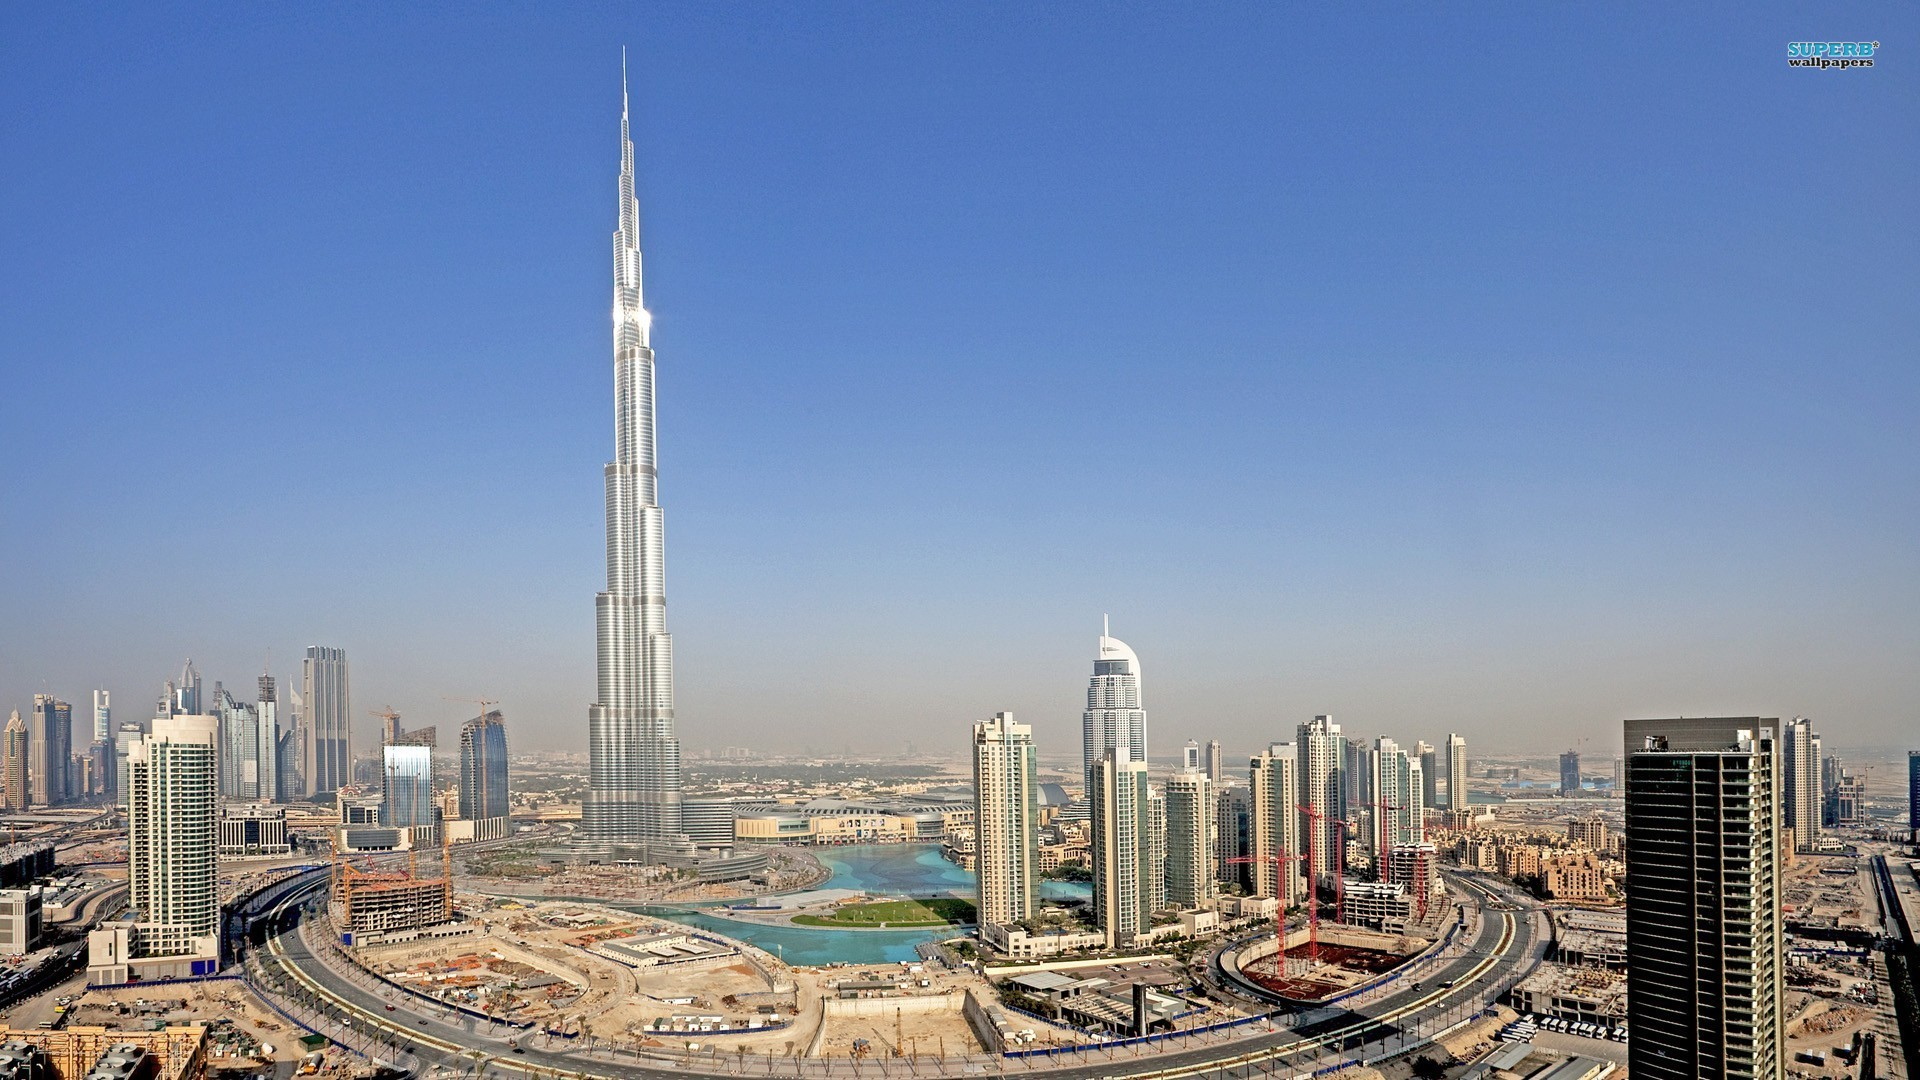 aerial view of burj khalifa dubai